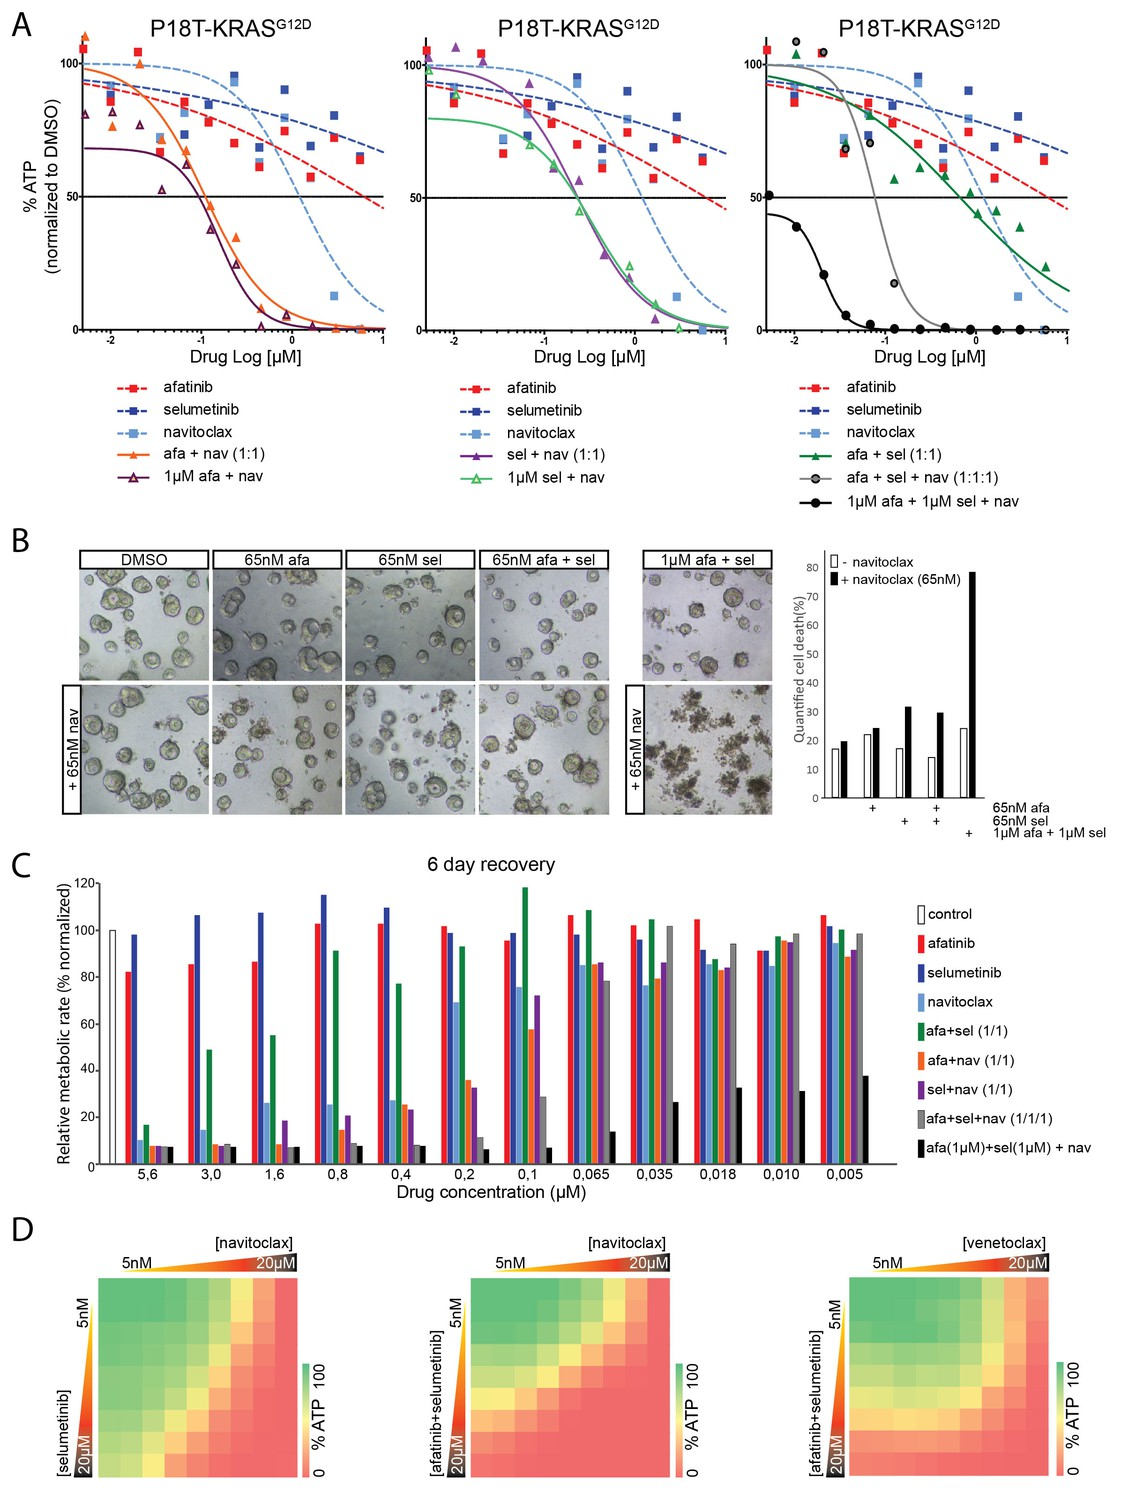 Medication discount coupons bvgg - Robust Inhibition Of The Egfr Ras Erk Pathway Sensitizes For Navitoclax Induced Cell Death